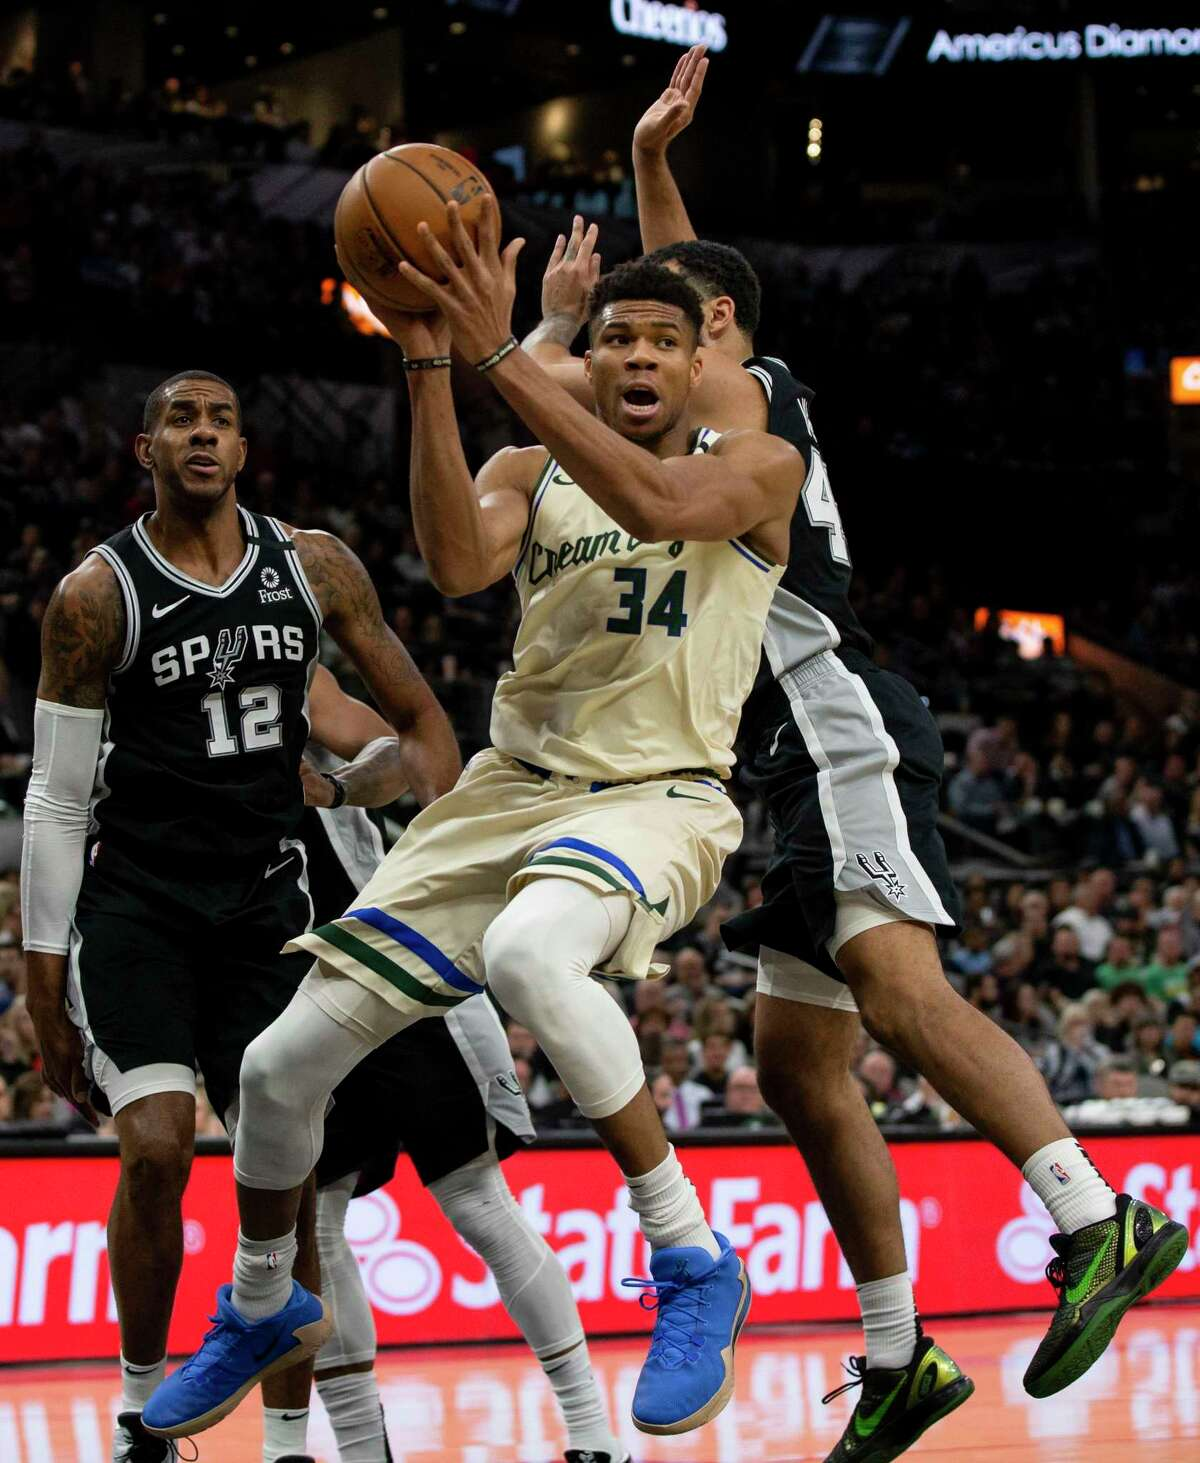 Milwaukee Bucks' Giannis Antetokounmpo goes up for a shot as the San Antonio Spurs try to block him during the Spurs' game against the Bucks at AT&T Center in San Antonio, Texas, Jan. 6, 2020.